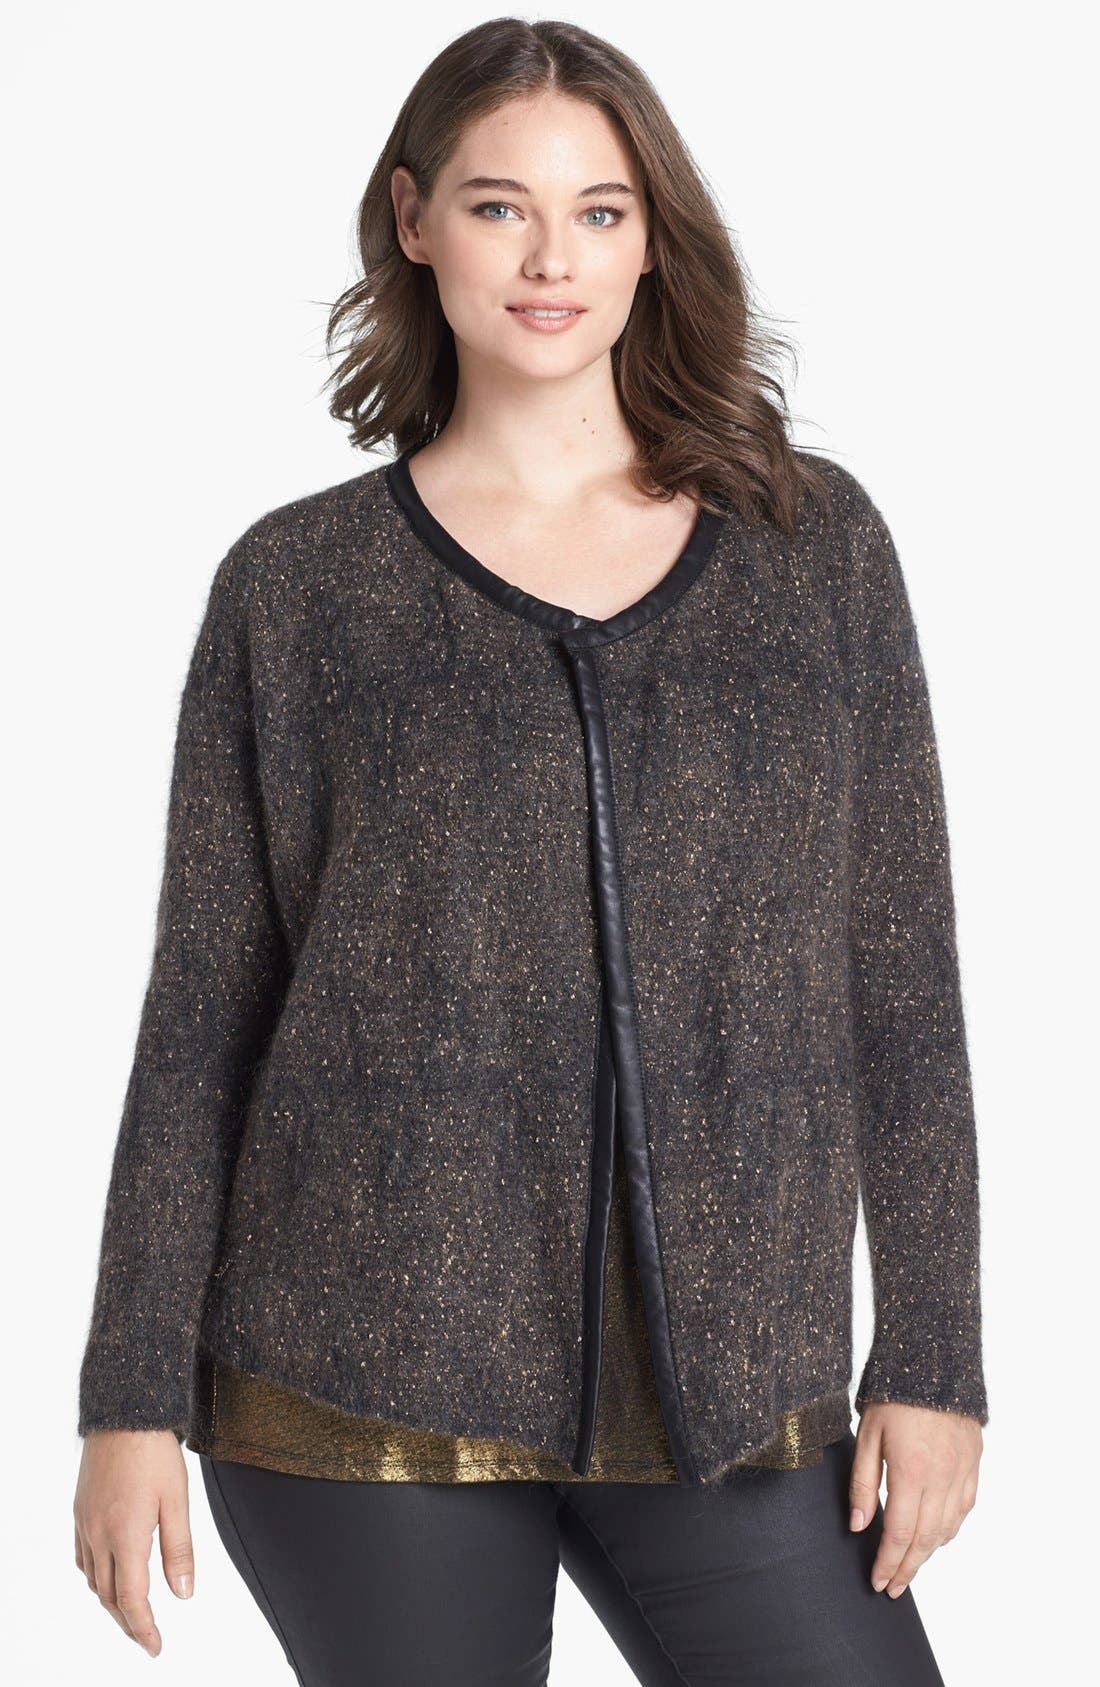 Alternate Image 1 Selected - Eileen Fisher Leather Trim Jacket (Plus Size)